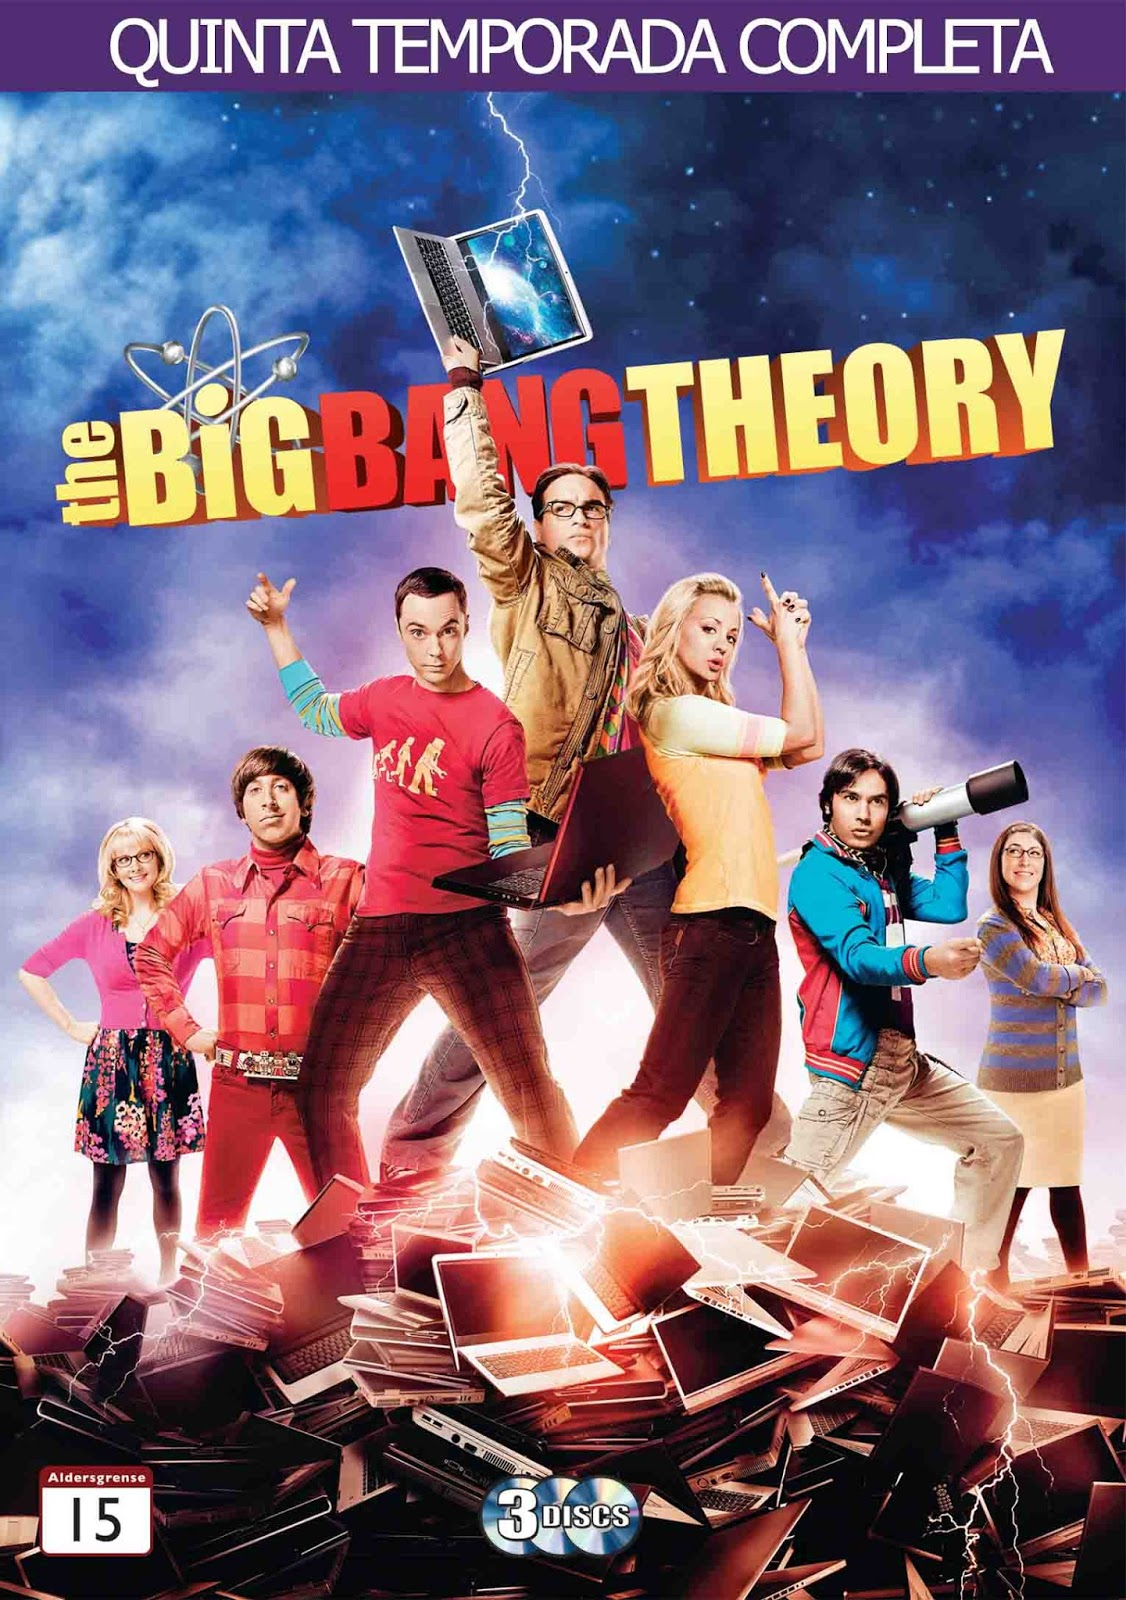 The Big Bang Theory 5ª Temporada Torrent - Blu-ray Rip 720p Dual Áudio (2011)